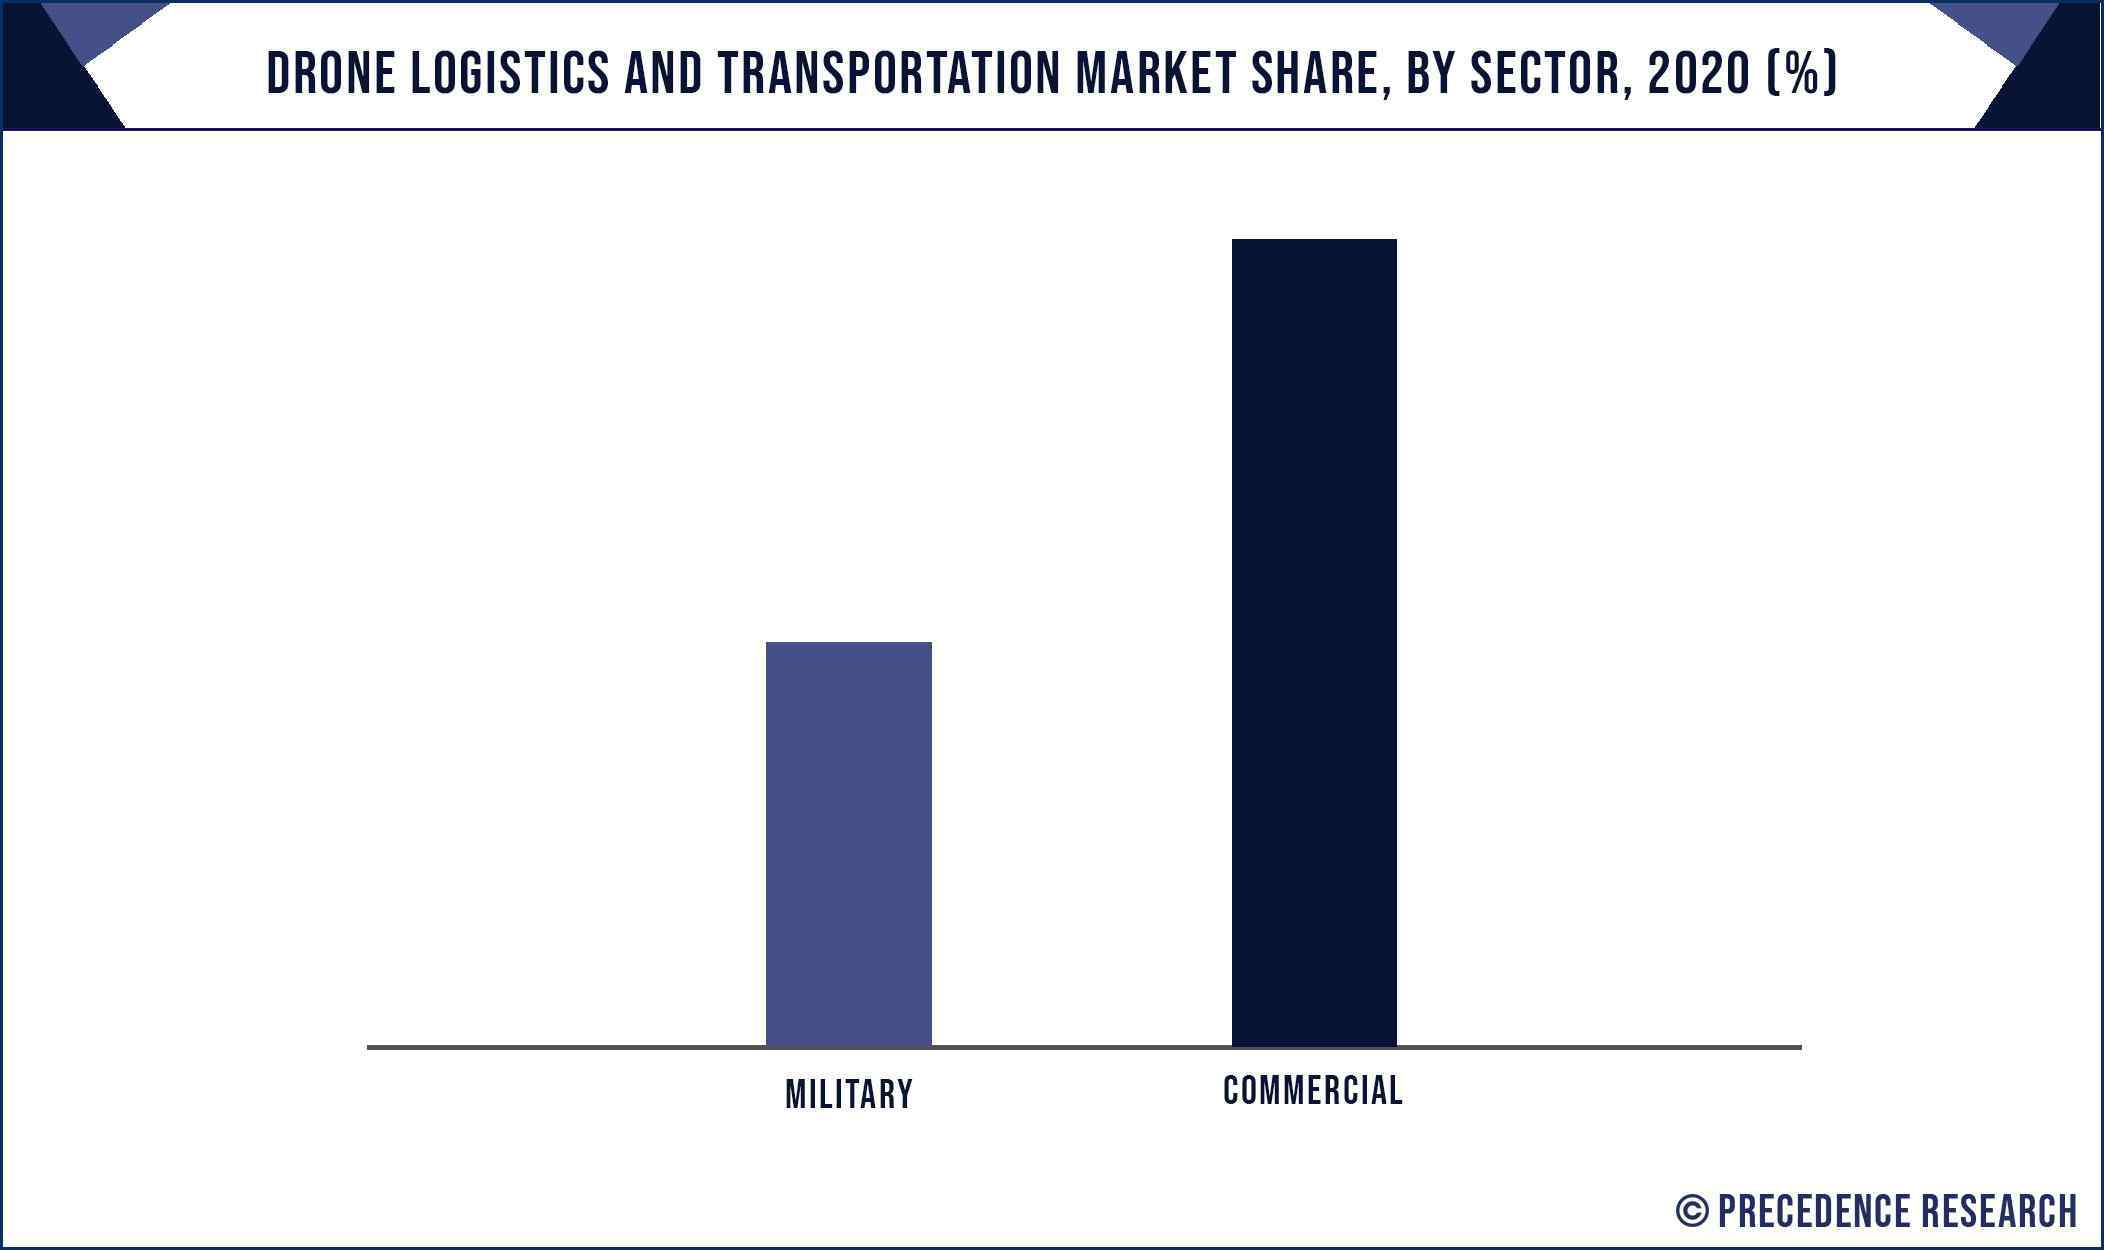 Drone Logistics and Transportation Market Share, By Sector, 2020 (%)